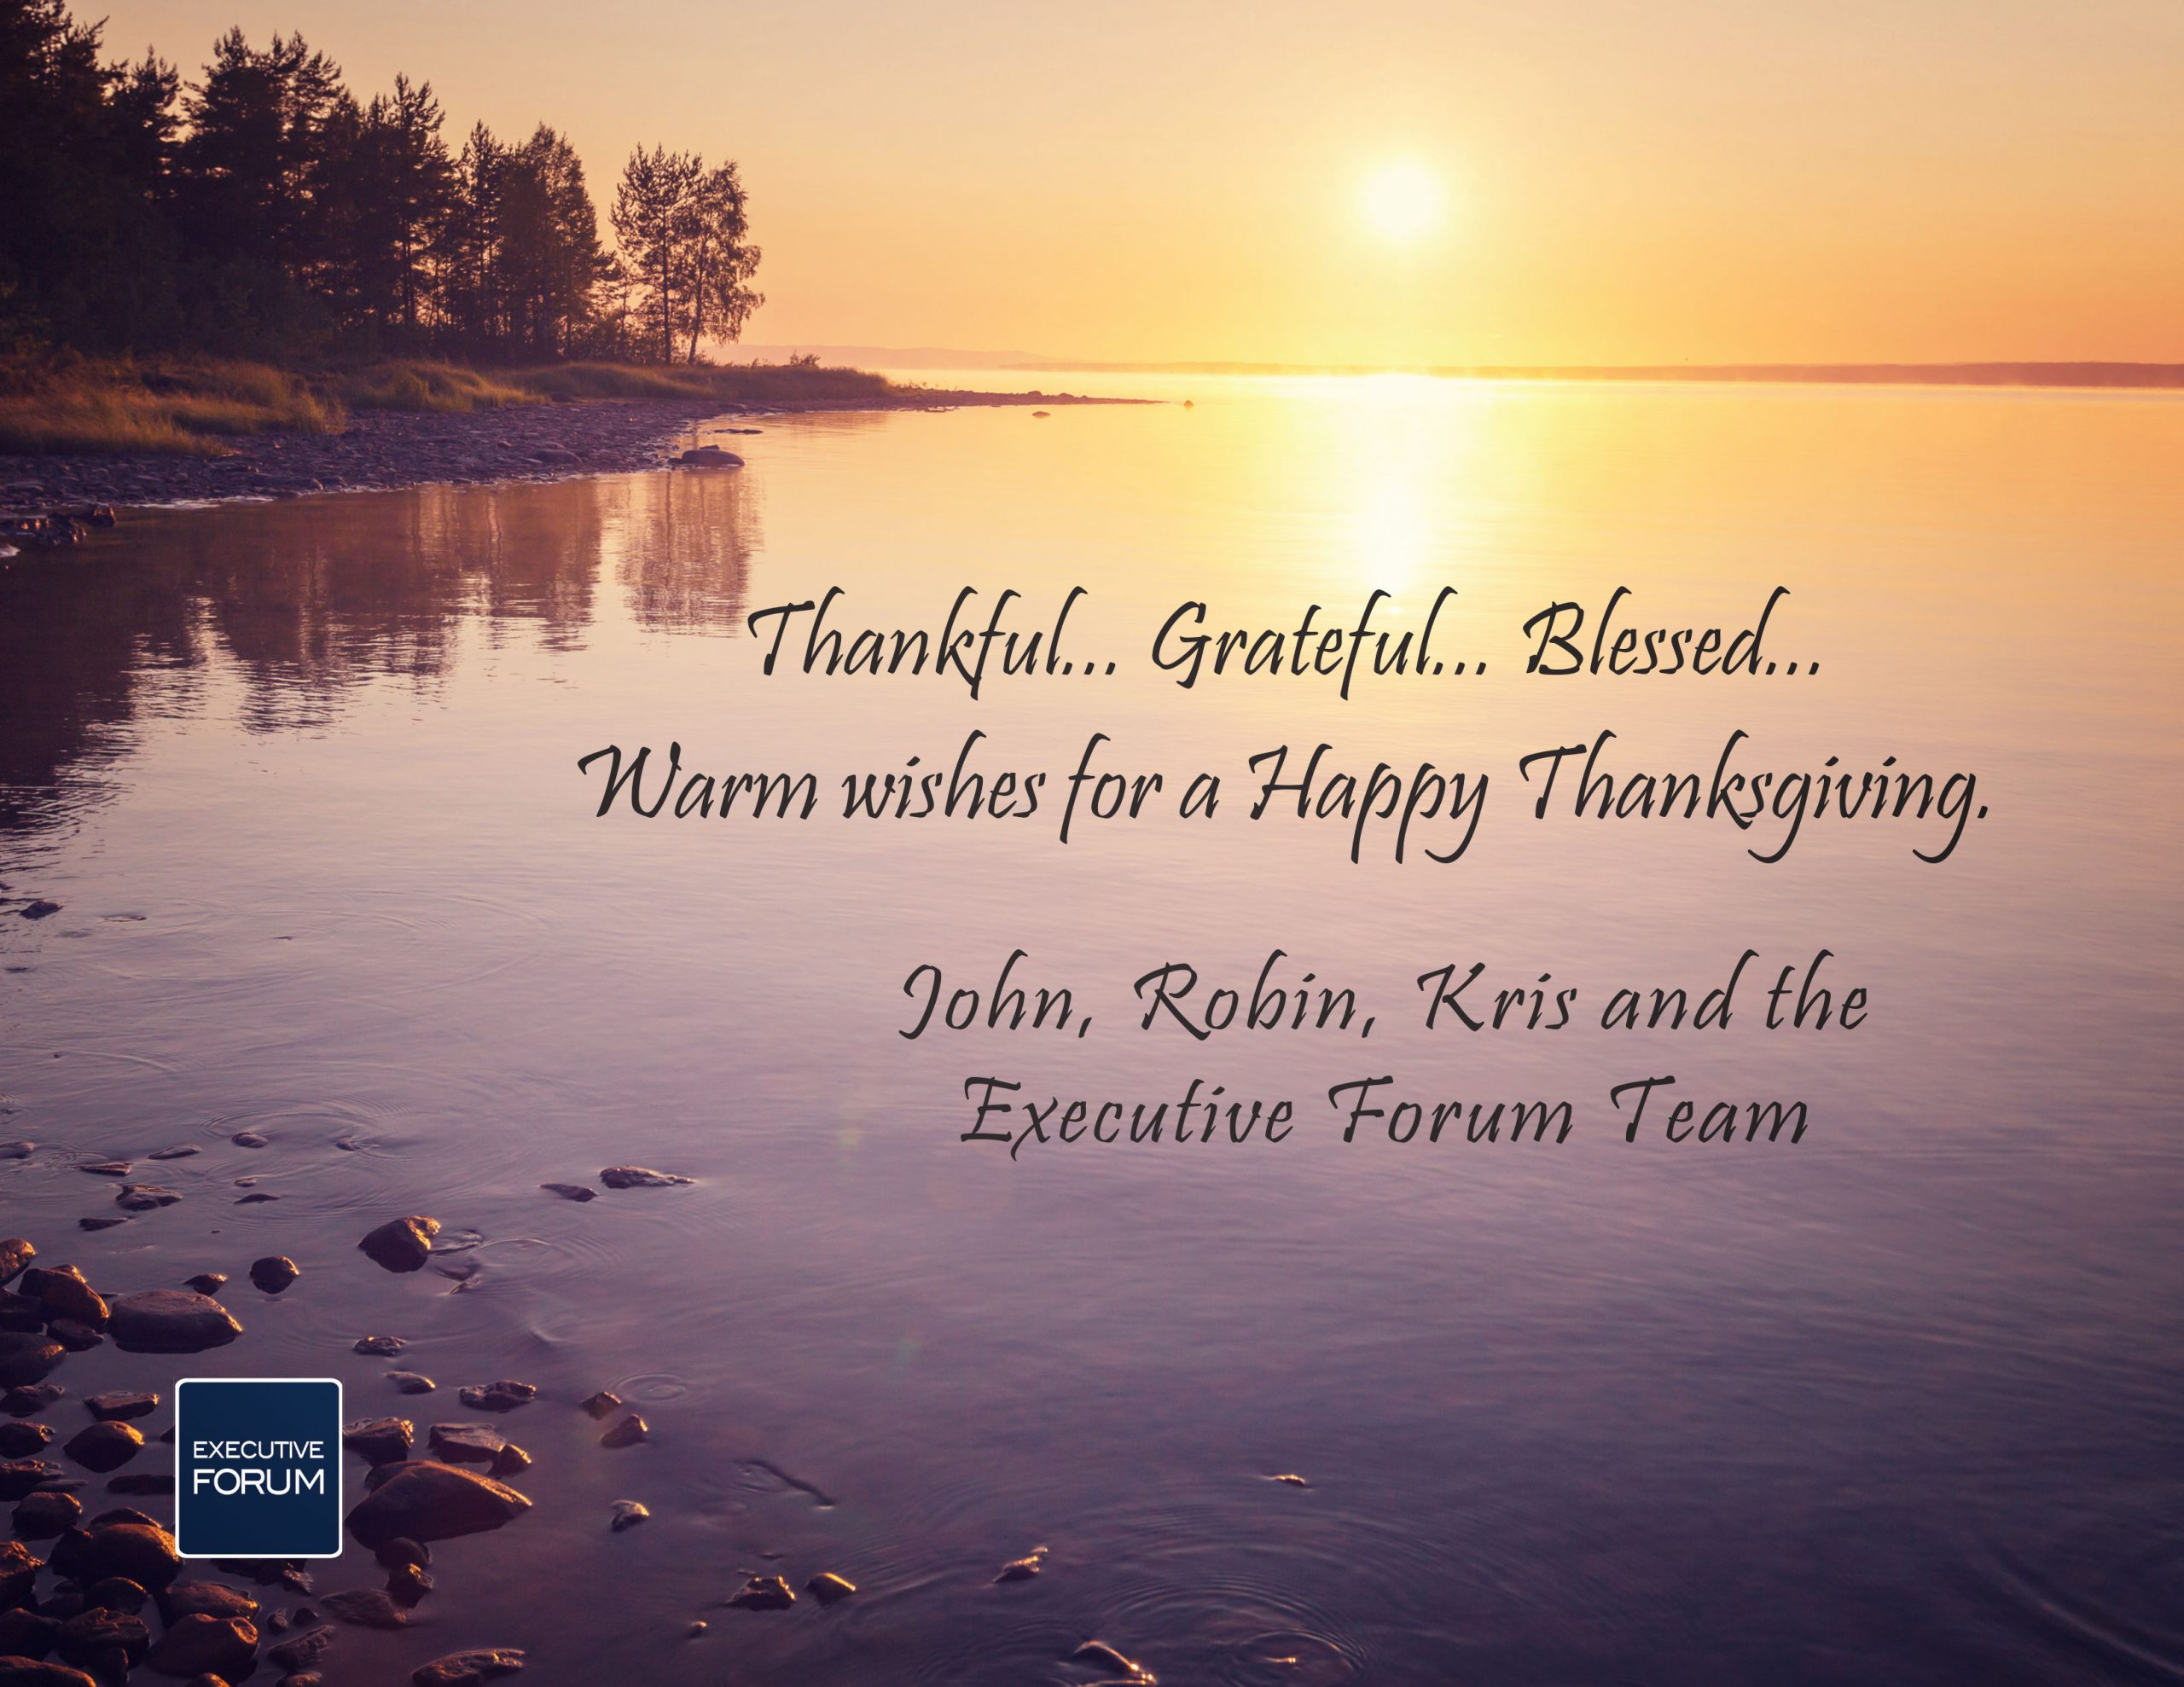 Thanksgiving message and photo